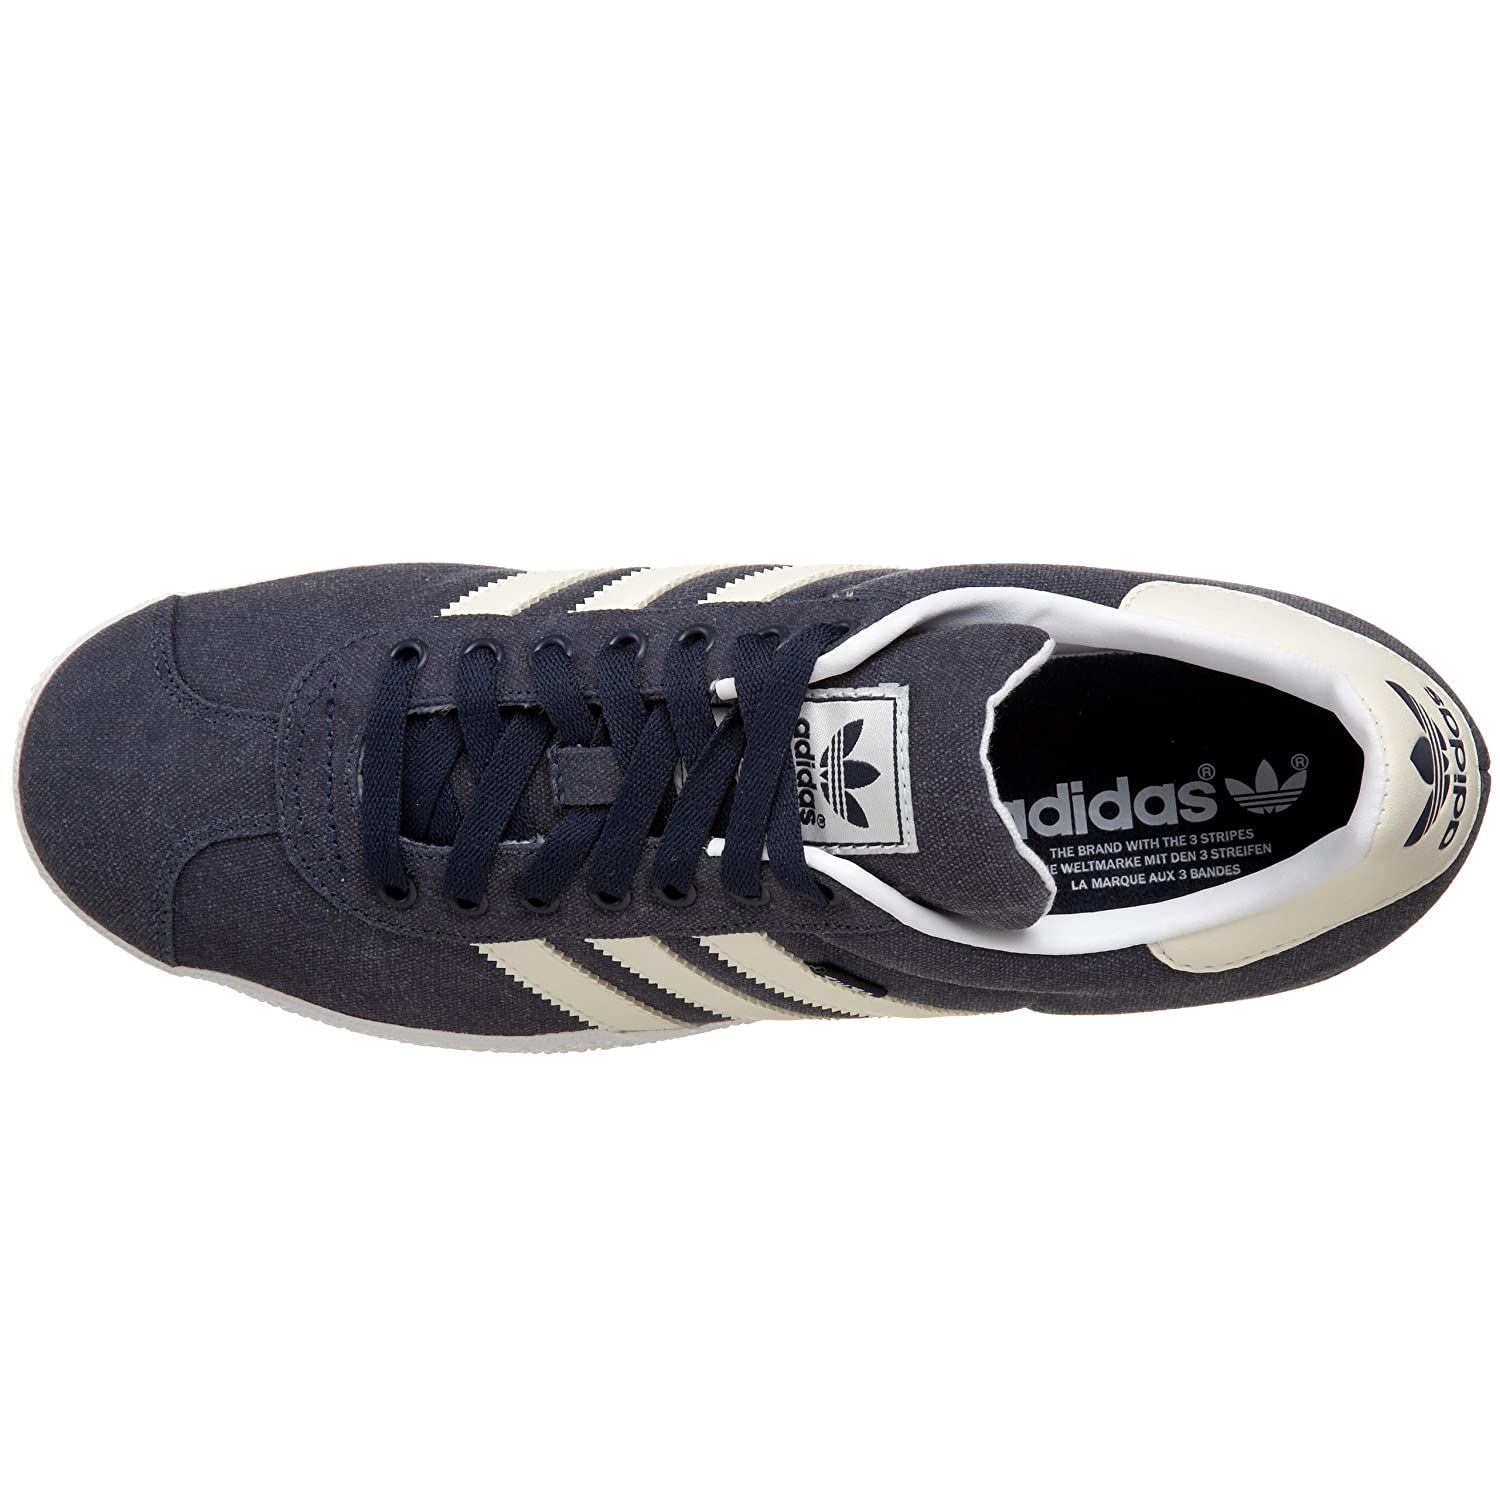 buy popular 8a506 1e090 Adidas Originals Men s Gazelle 2 Hemp Fashion Sneaker, Collegiate  Navy Ecru White, 8.5 D  Buy Online at Low Prices in India - Amazon.in